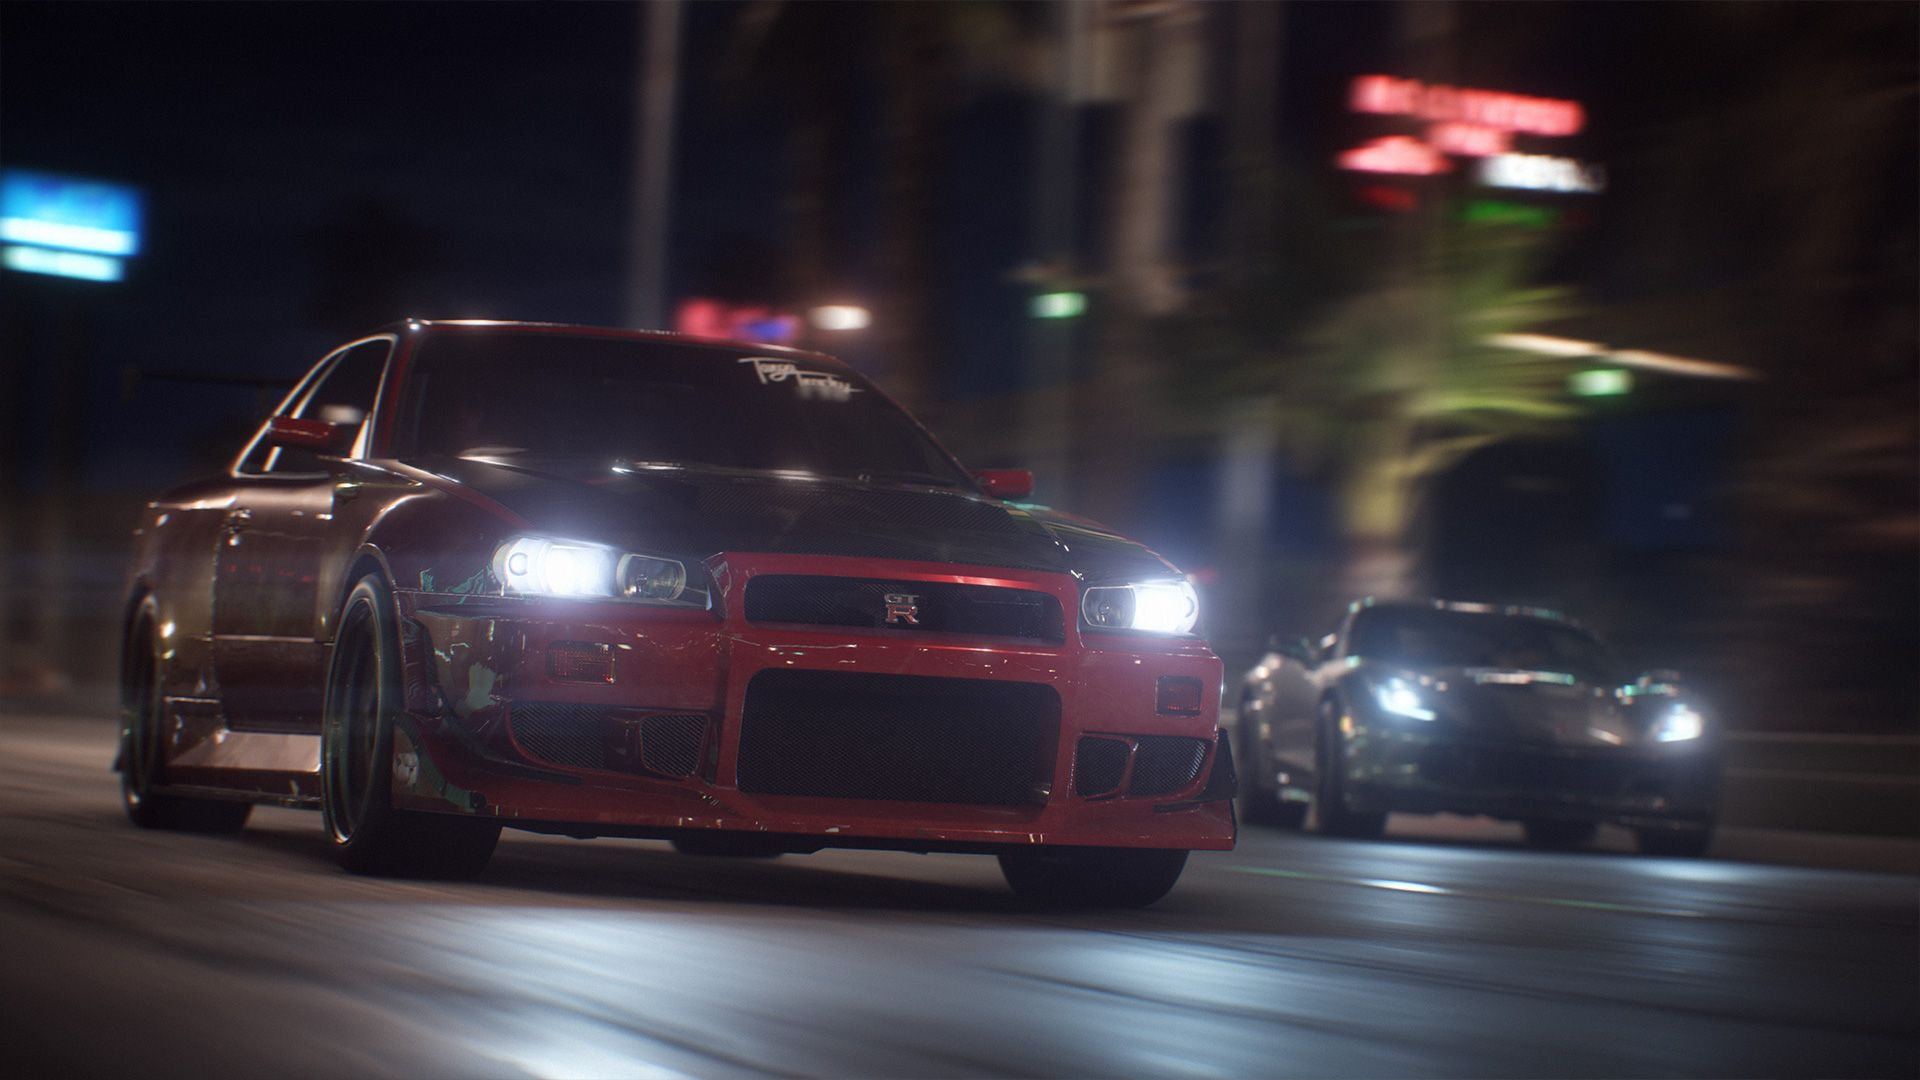 Need for Speed Payback Bring Down The House 1080p clean R34GTR screenshot4 1080